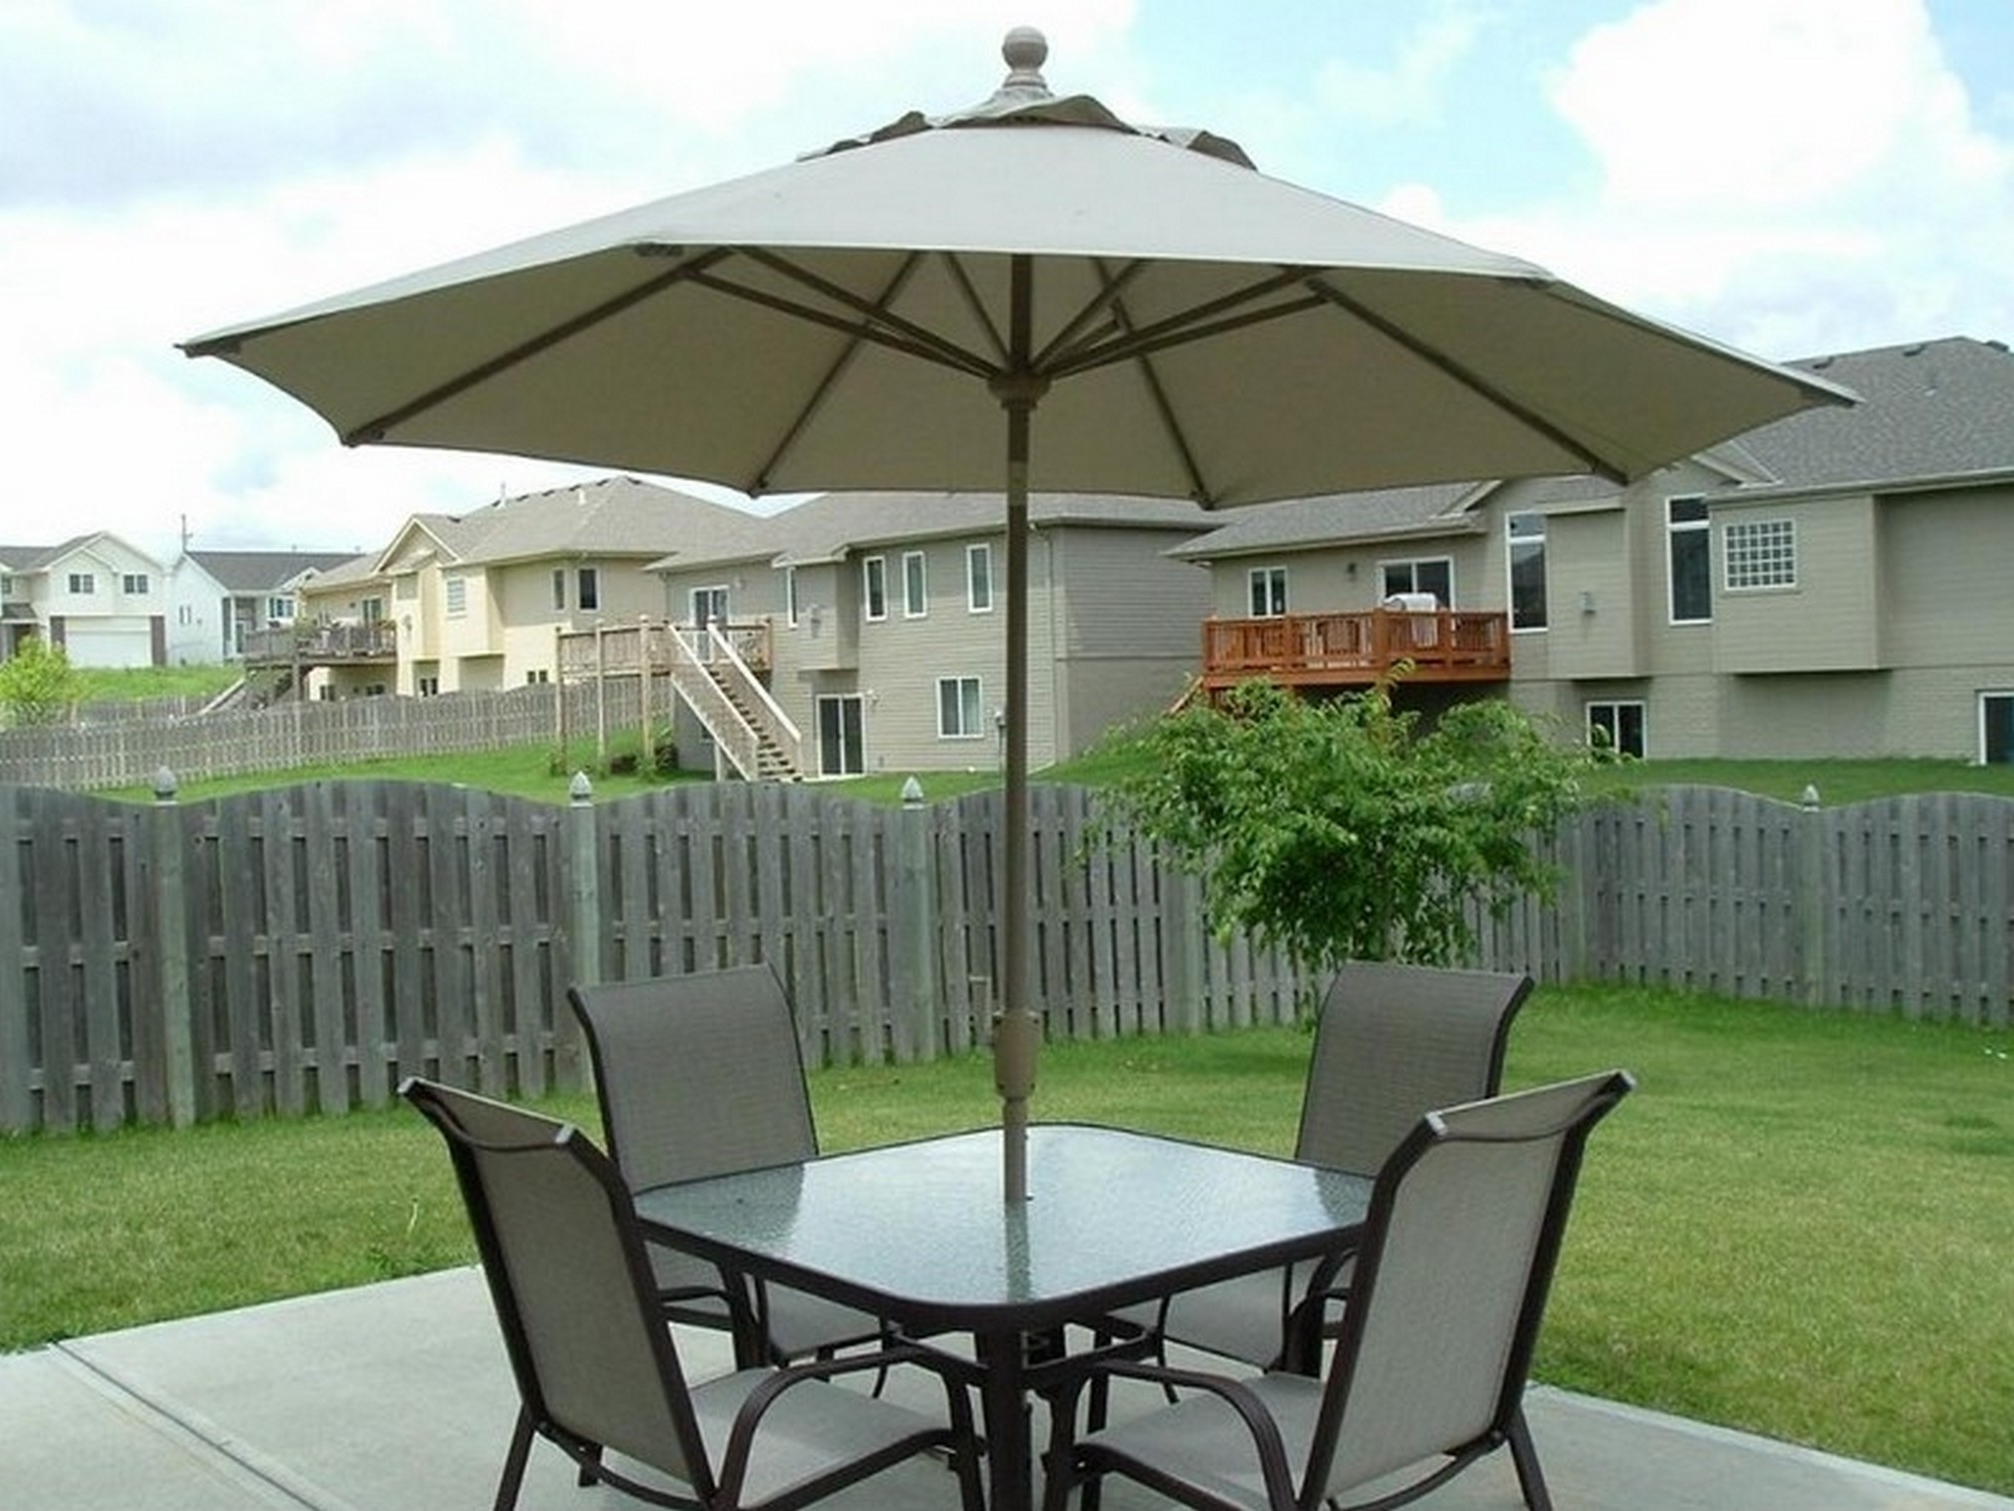 Free Standing Umbrellas For Patio Within Most Recently Released Patios: Led Umbrella Patio (View 11 of 20)